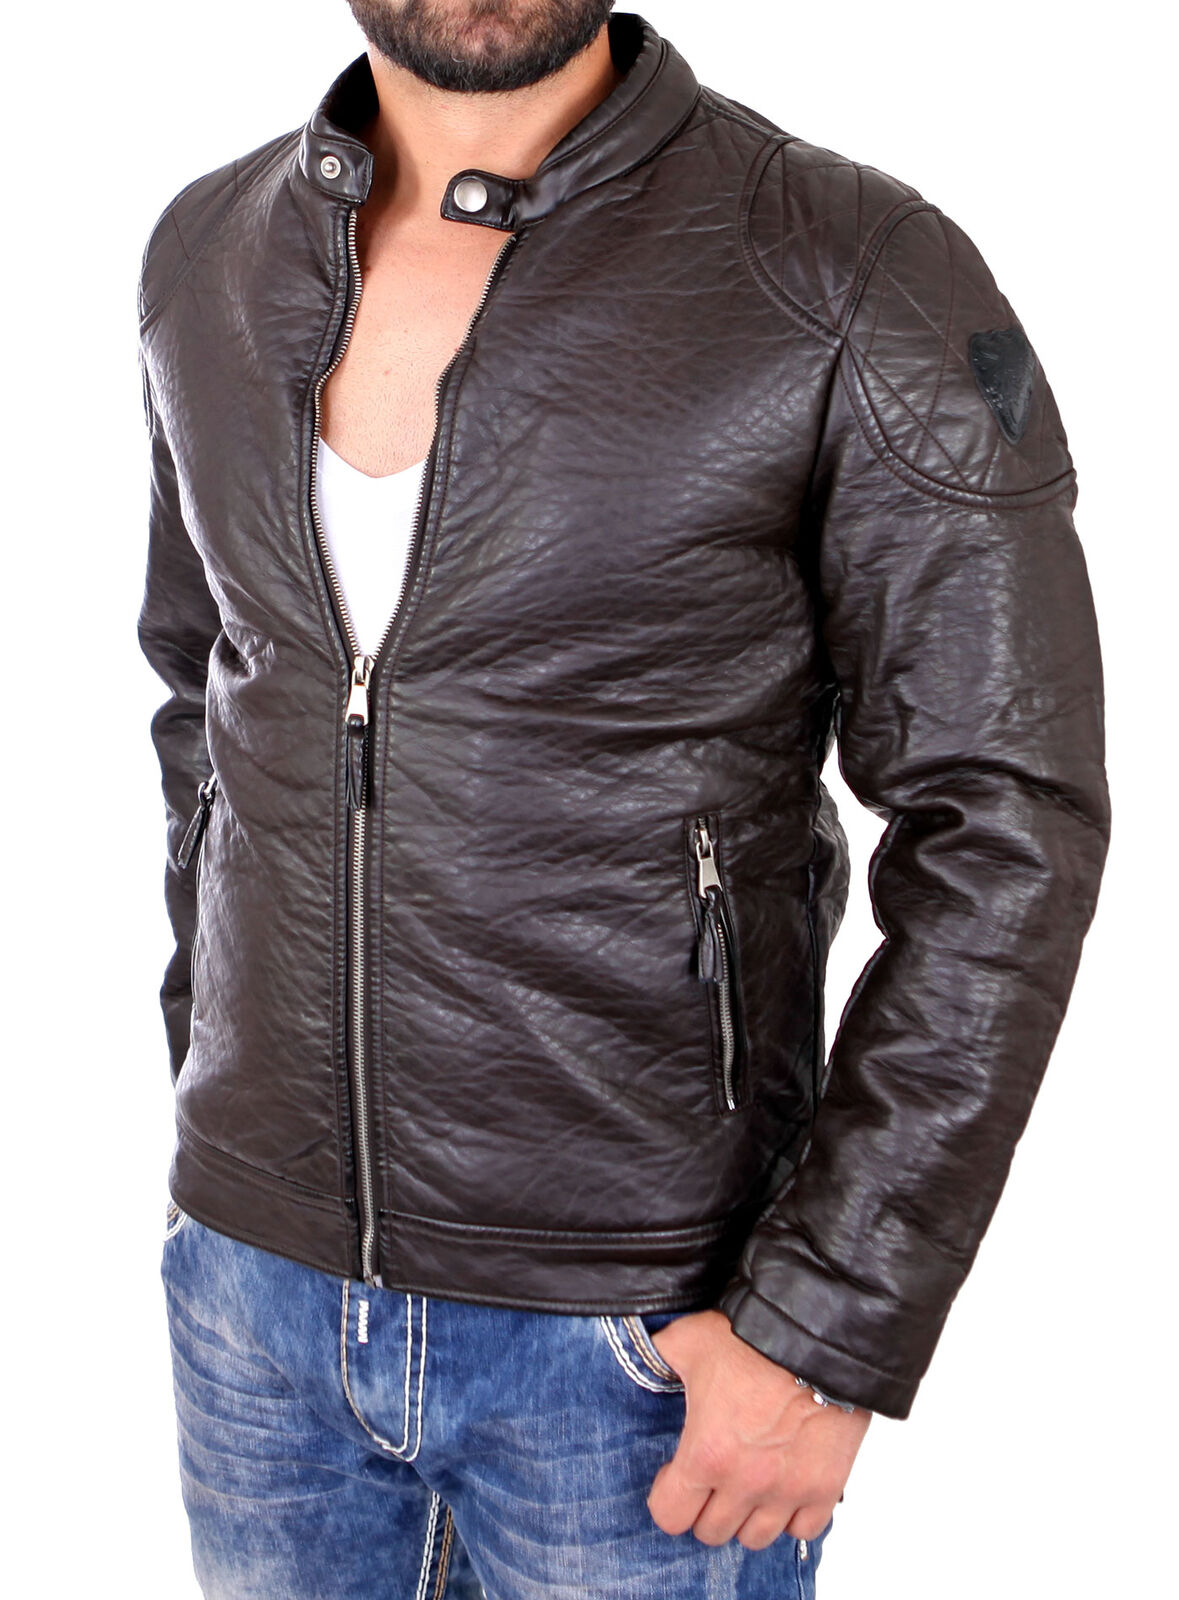 Reslad Giacca di Pelle look Uomo sgualciti look Pelle ecopelle Biker Giacca rs-1505 NUOVO 171929